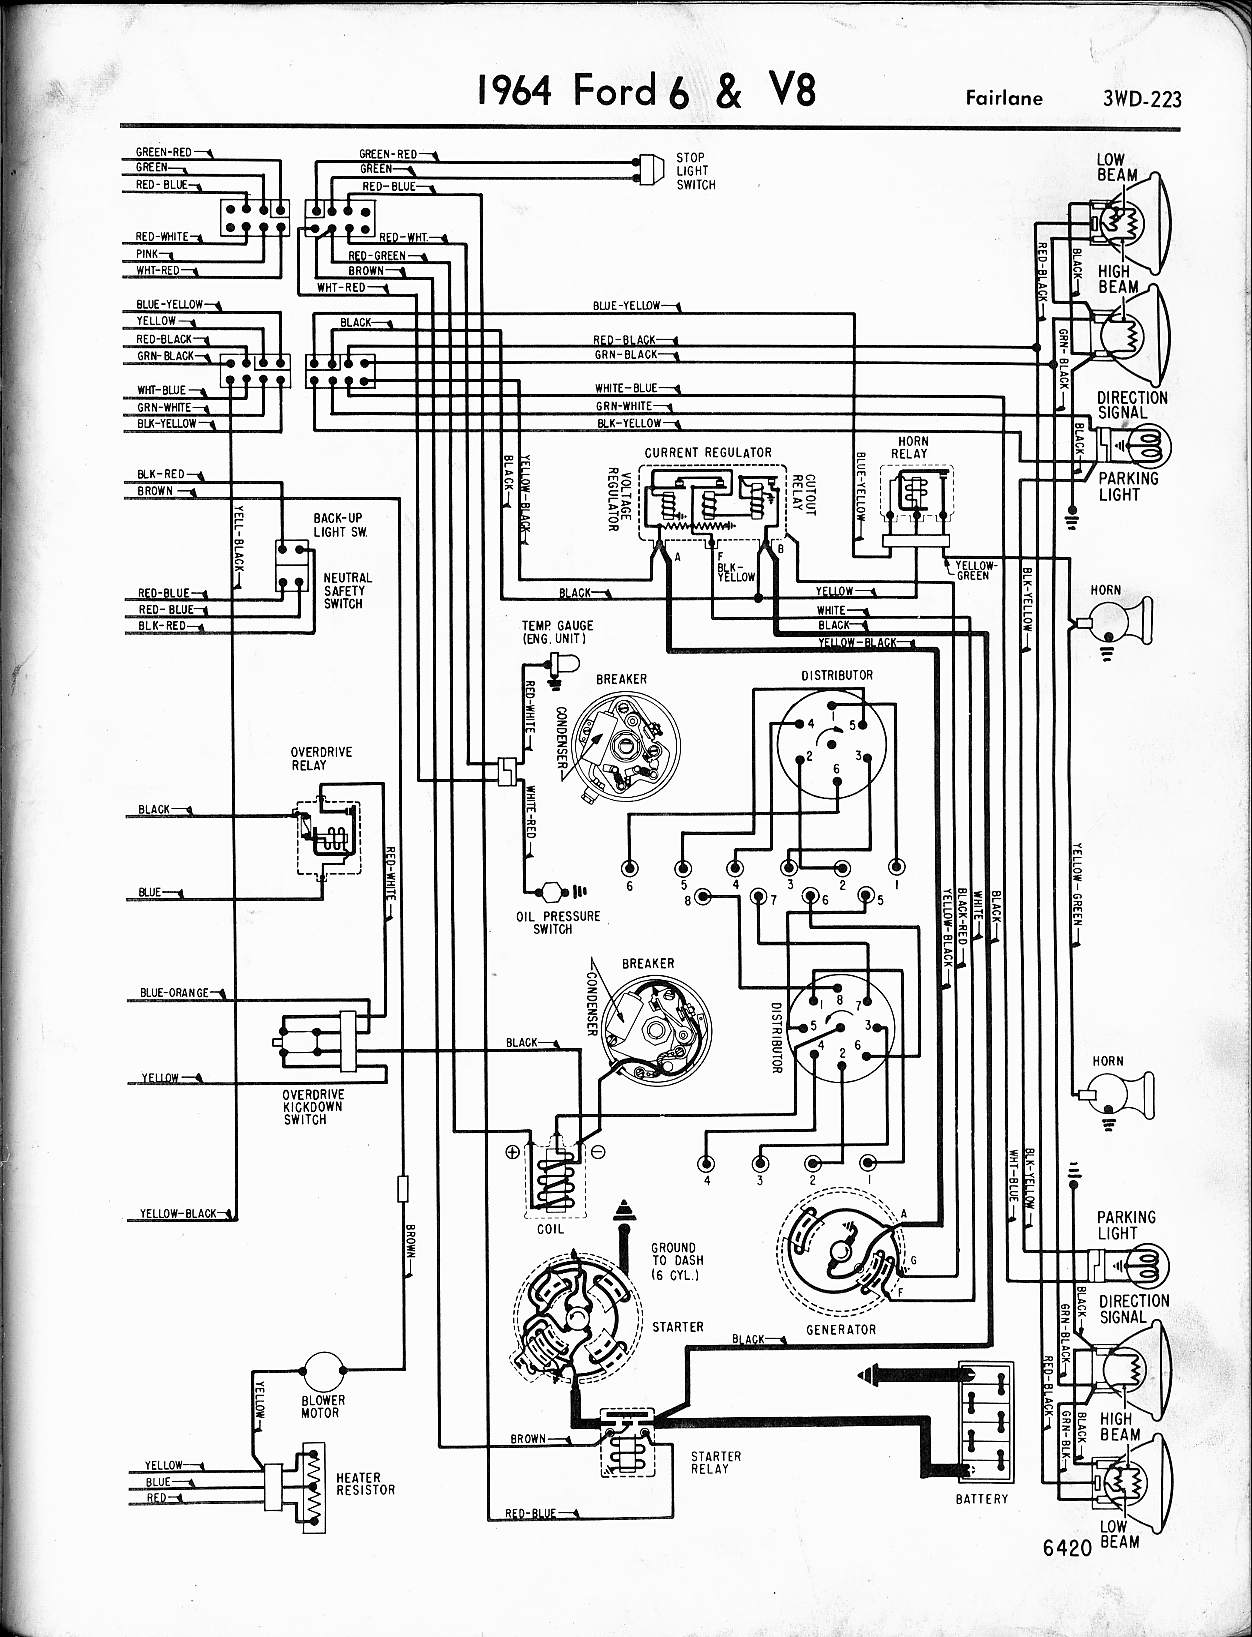 57 Ford Wiring | Wiring Diagram Ford Fairlane Wiring Diagram on ford aerostar wiring diagram, ford f-250 super duty wiring diagram, 1937 ford wiring diagram, ford 500 wiring diagram, ford f500 wiring diagram, ford fairlane rear suspension, 1963 ford wiring diagram, 1964 ford truck wiring diagram, ford fairlane fuel tank, ford truck wiring schematics, ford granada wiring diagram, ford econoline van wiring diagram, ford fairlane exhaust, ford fairlane radio, ford electrical wiring diagrams, ford fairlane specifications, ford fairlane body, ford thunderbird wiring diagram, 1965 ford truck wiring diagram, ford flex wiring diagram,